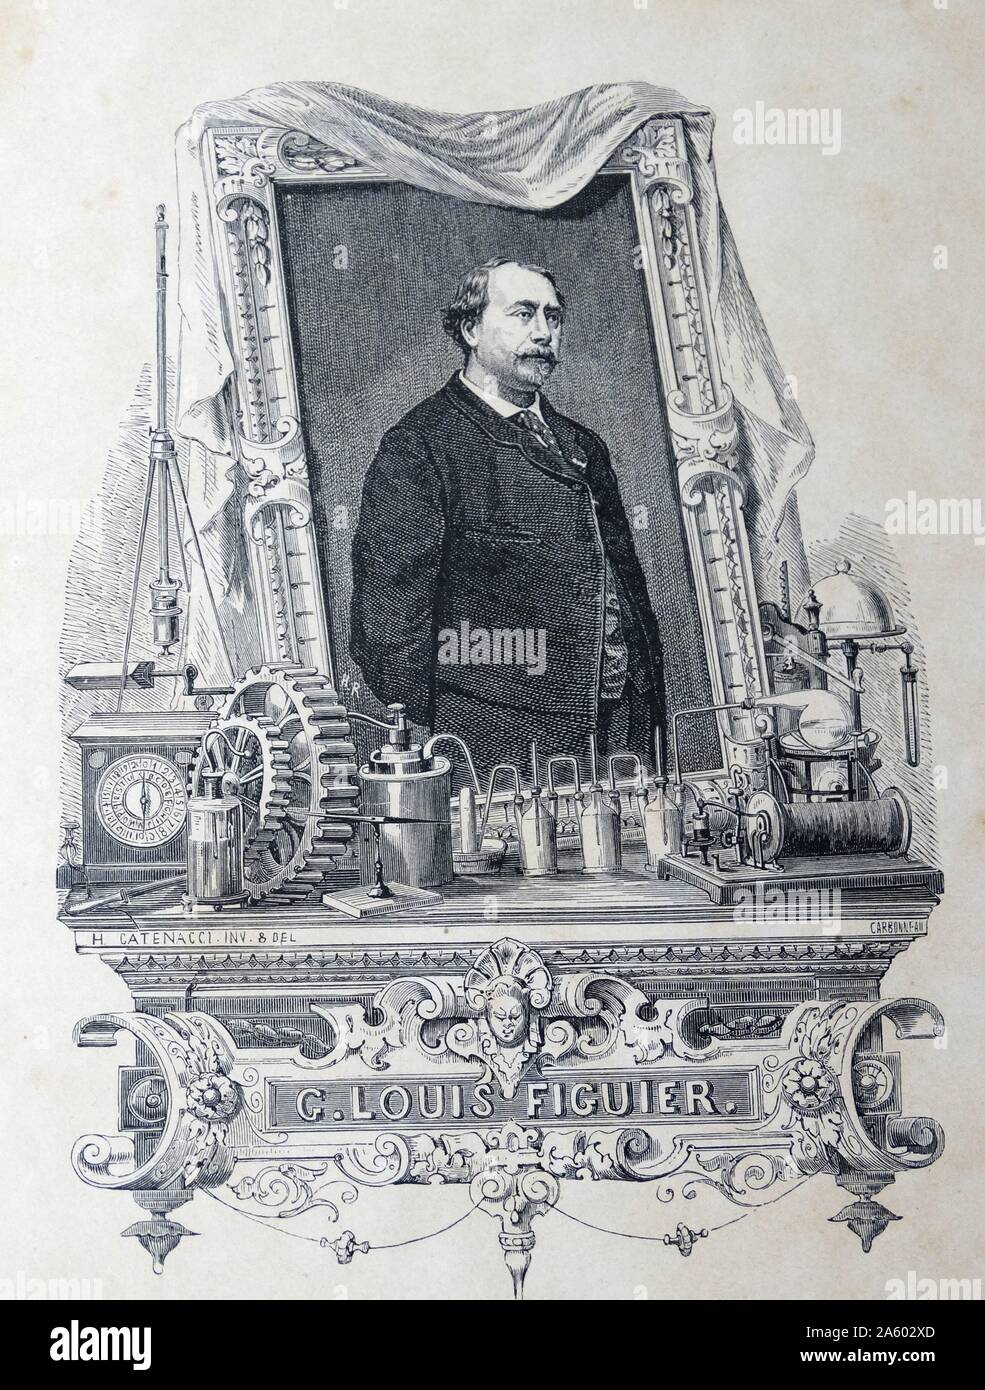 Louis FIGUIER - 1819-1894 French author who wrote prolifically on modern science, technology, industry, and naval and military developments. Stock Photo